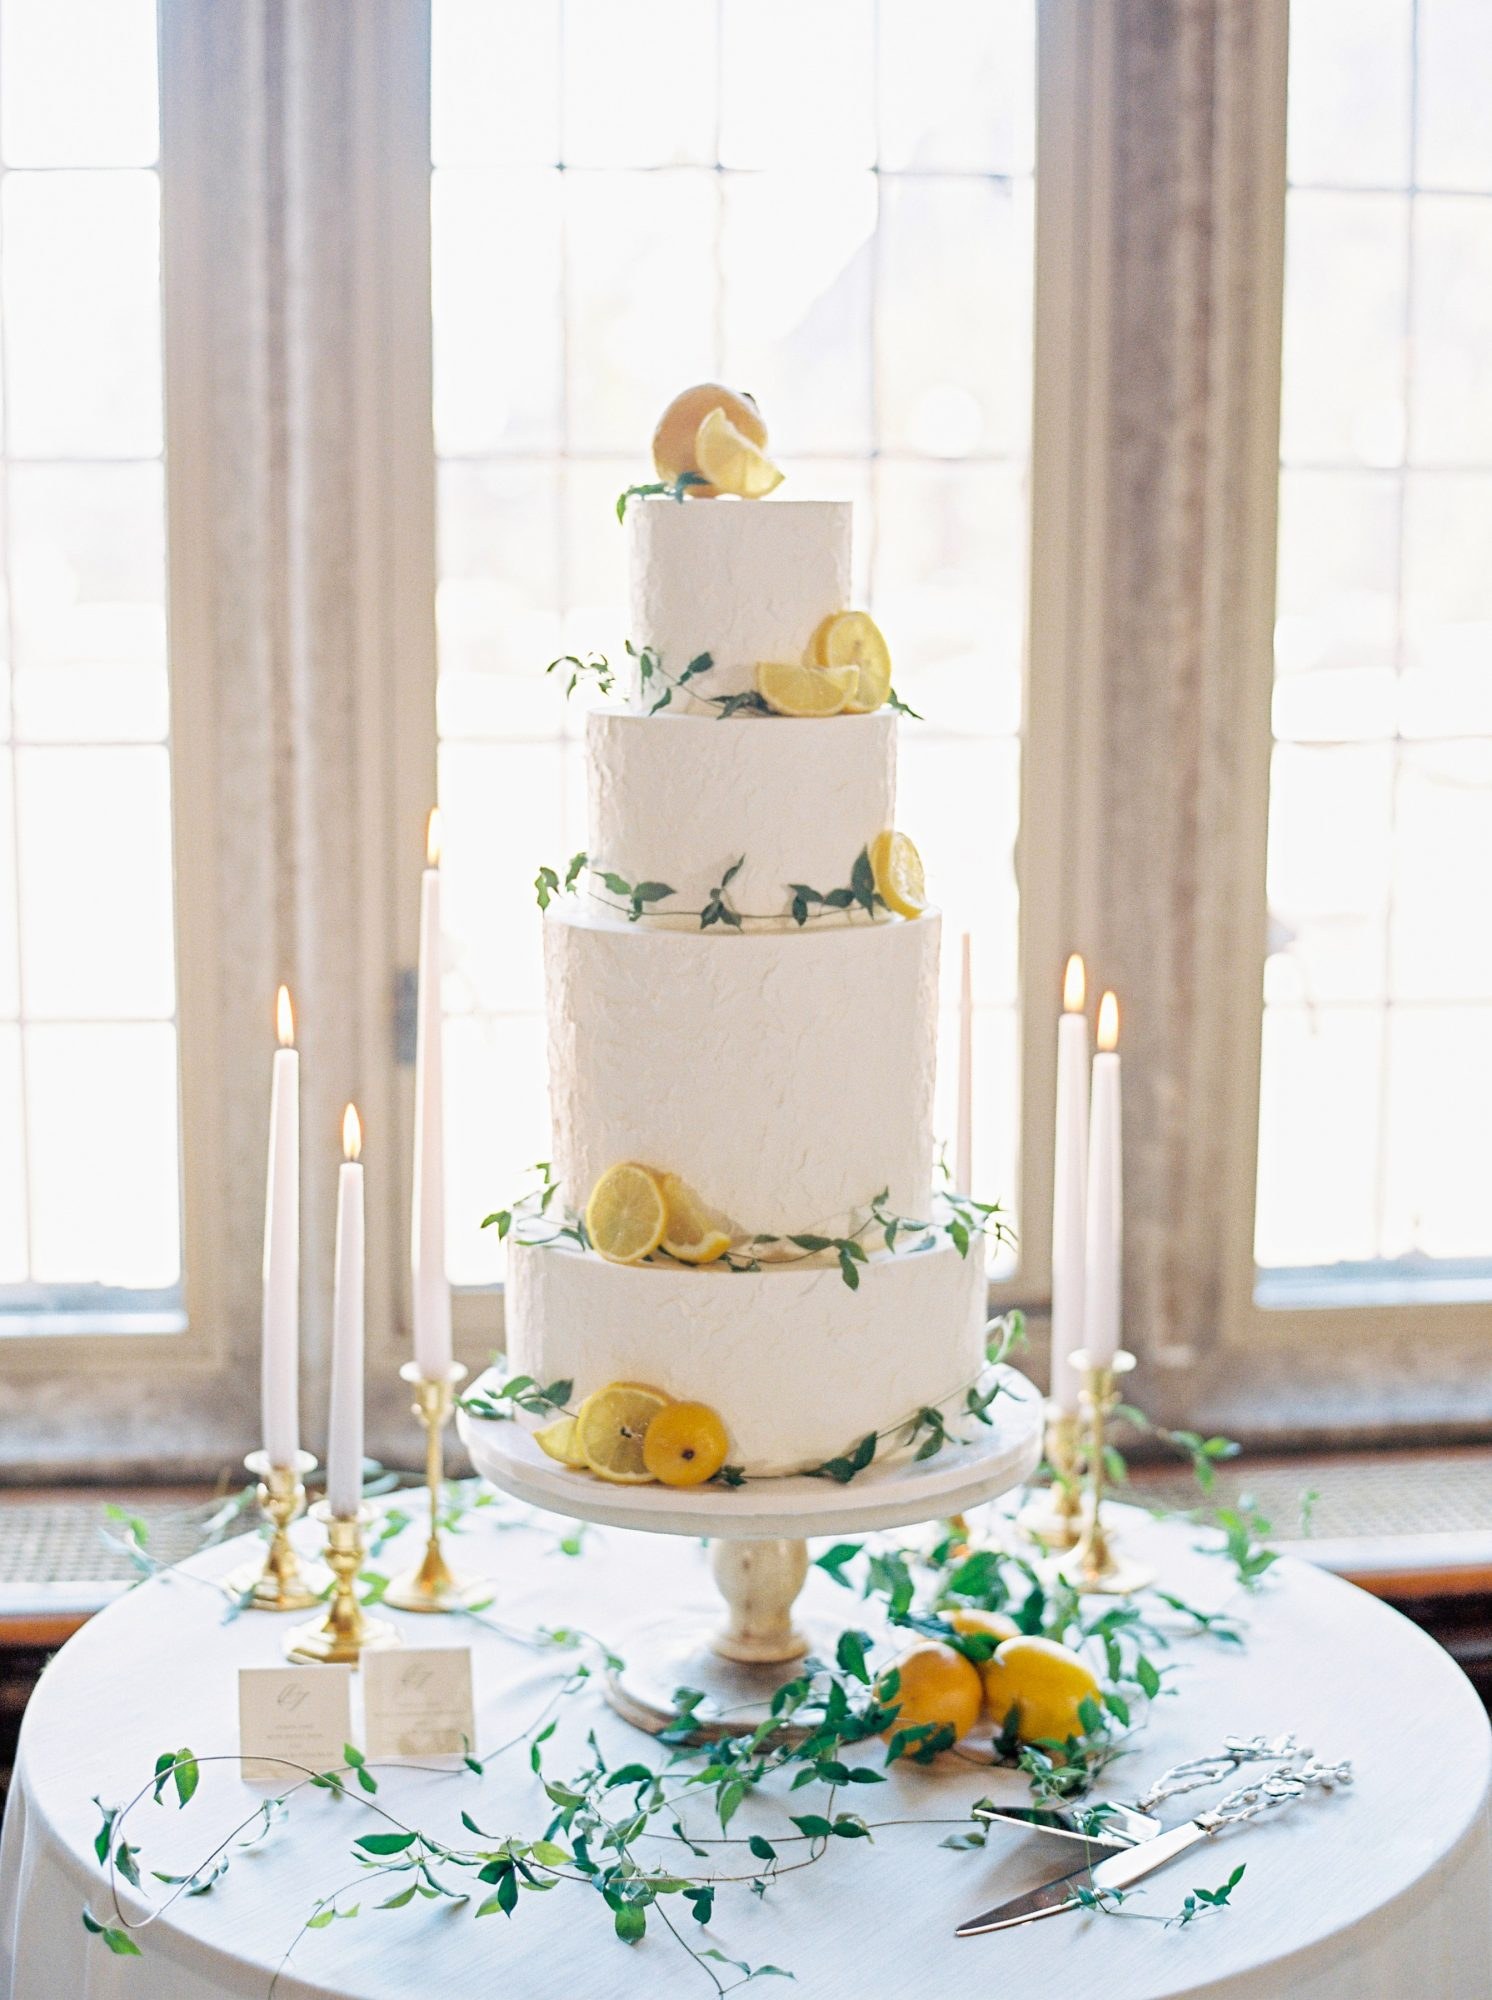 4-tier cake decorated with greenery and lemons